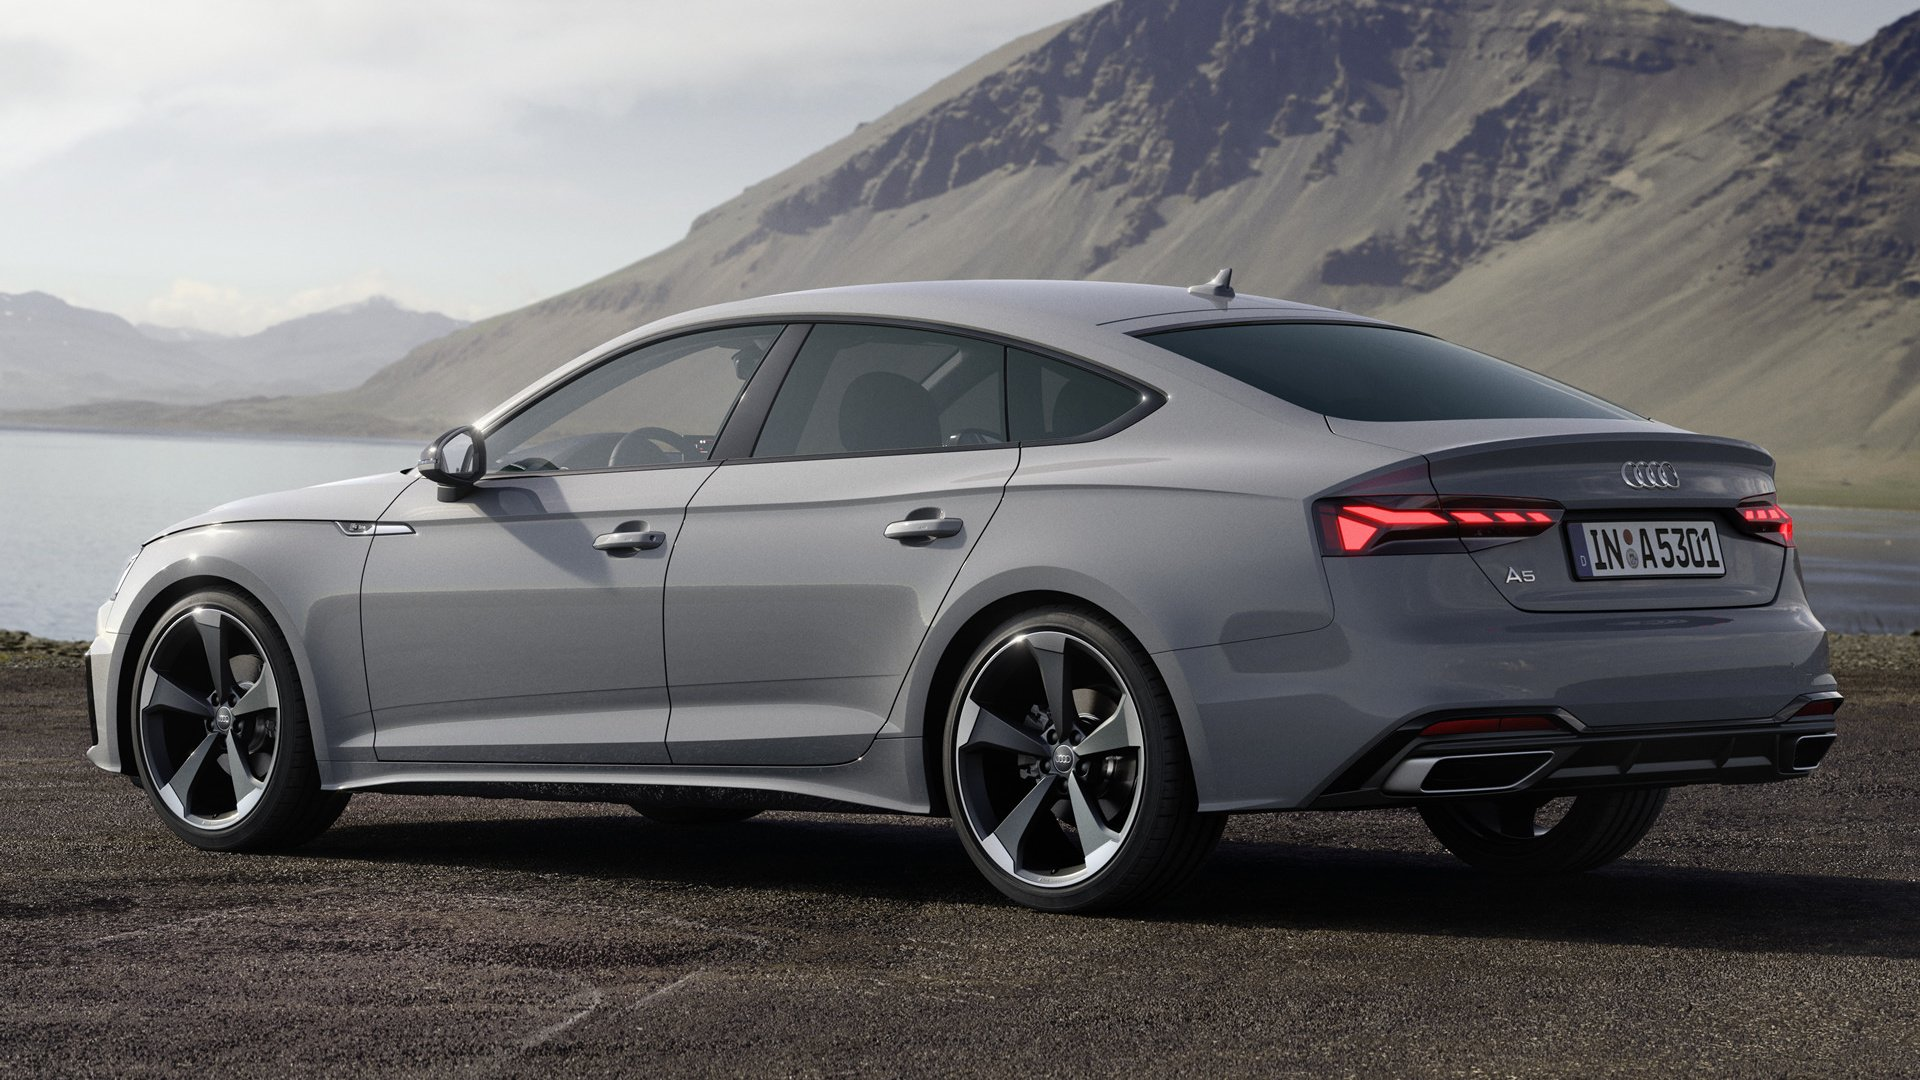 3 Audi A5 Sportback S Line Hd Wallpapers Background Images Wallpaper Abyss